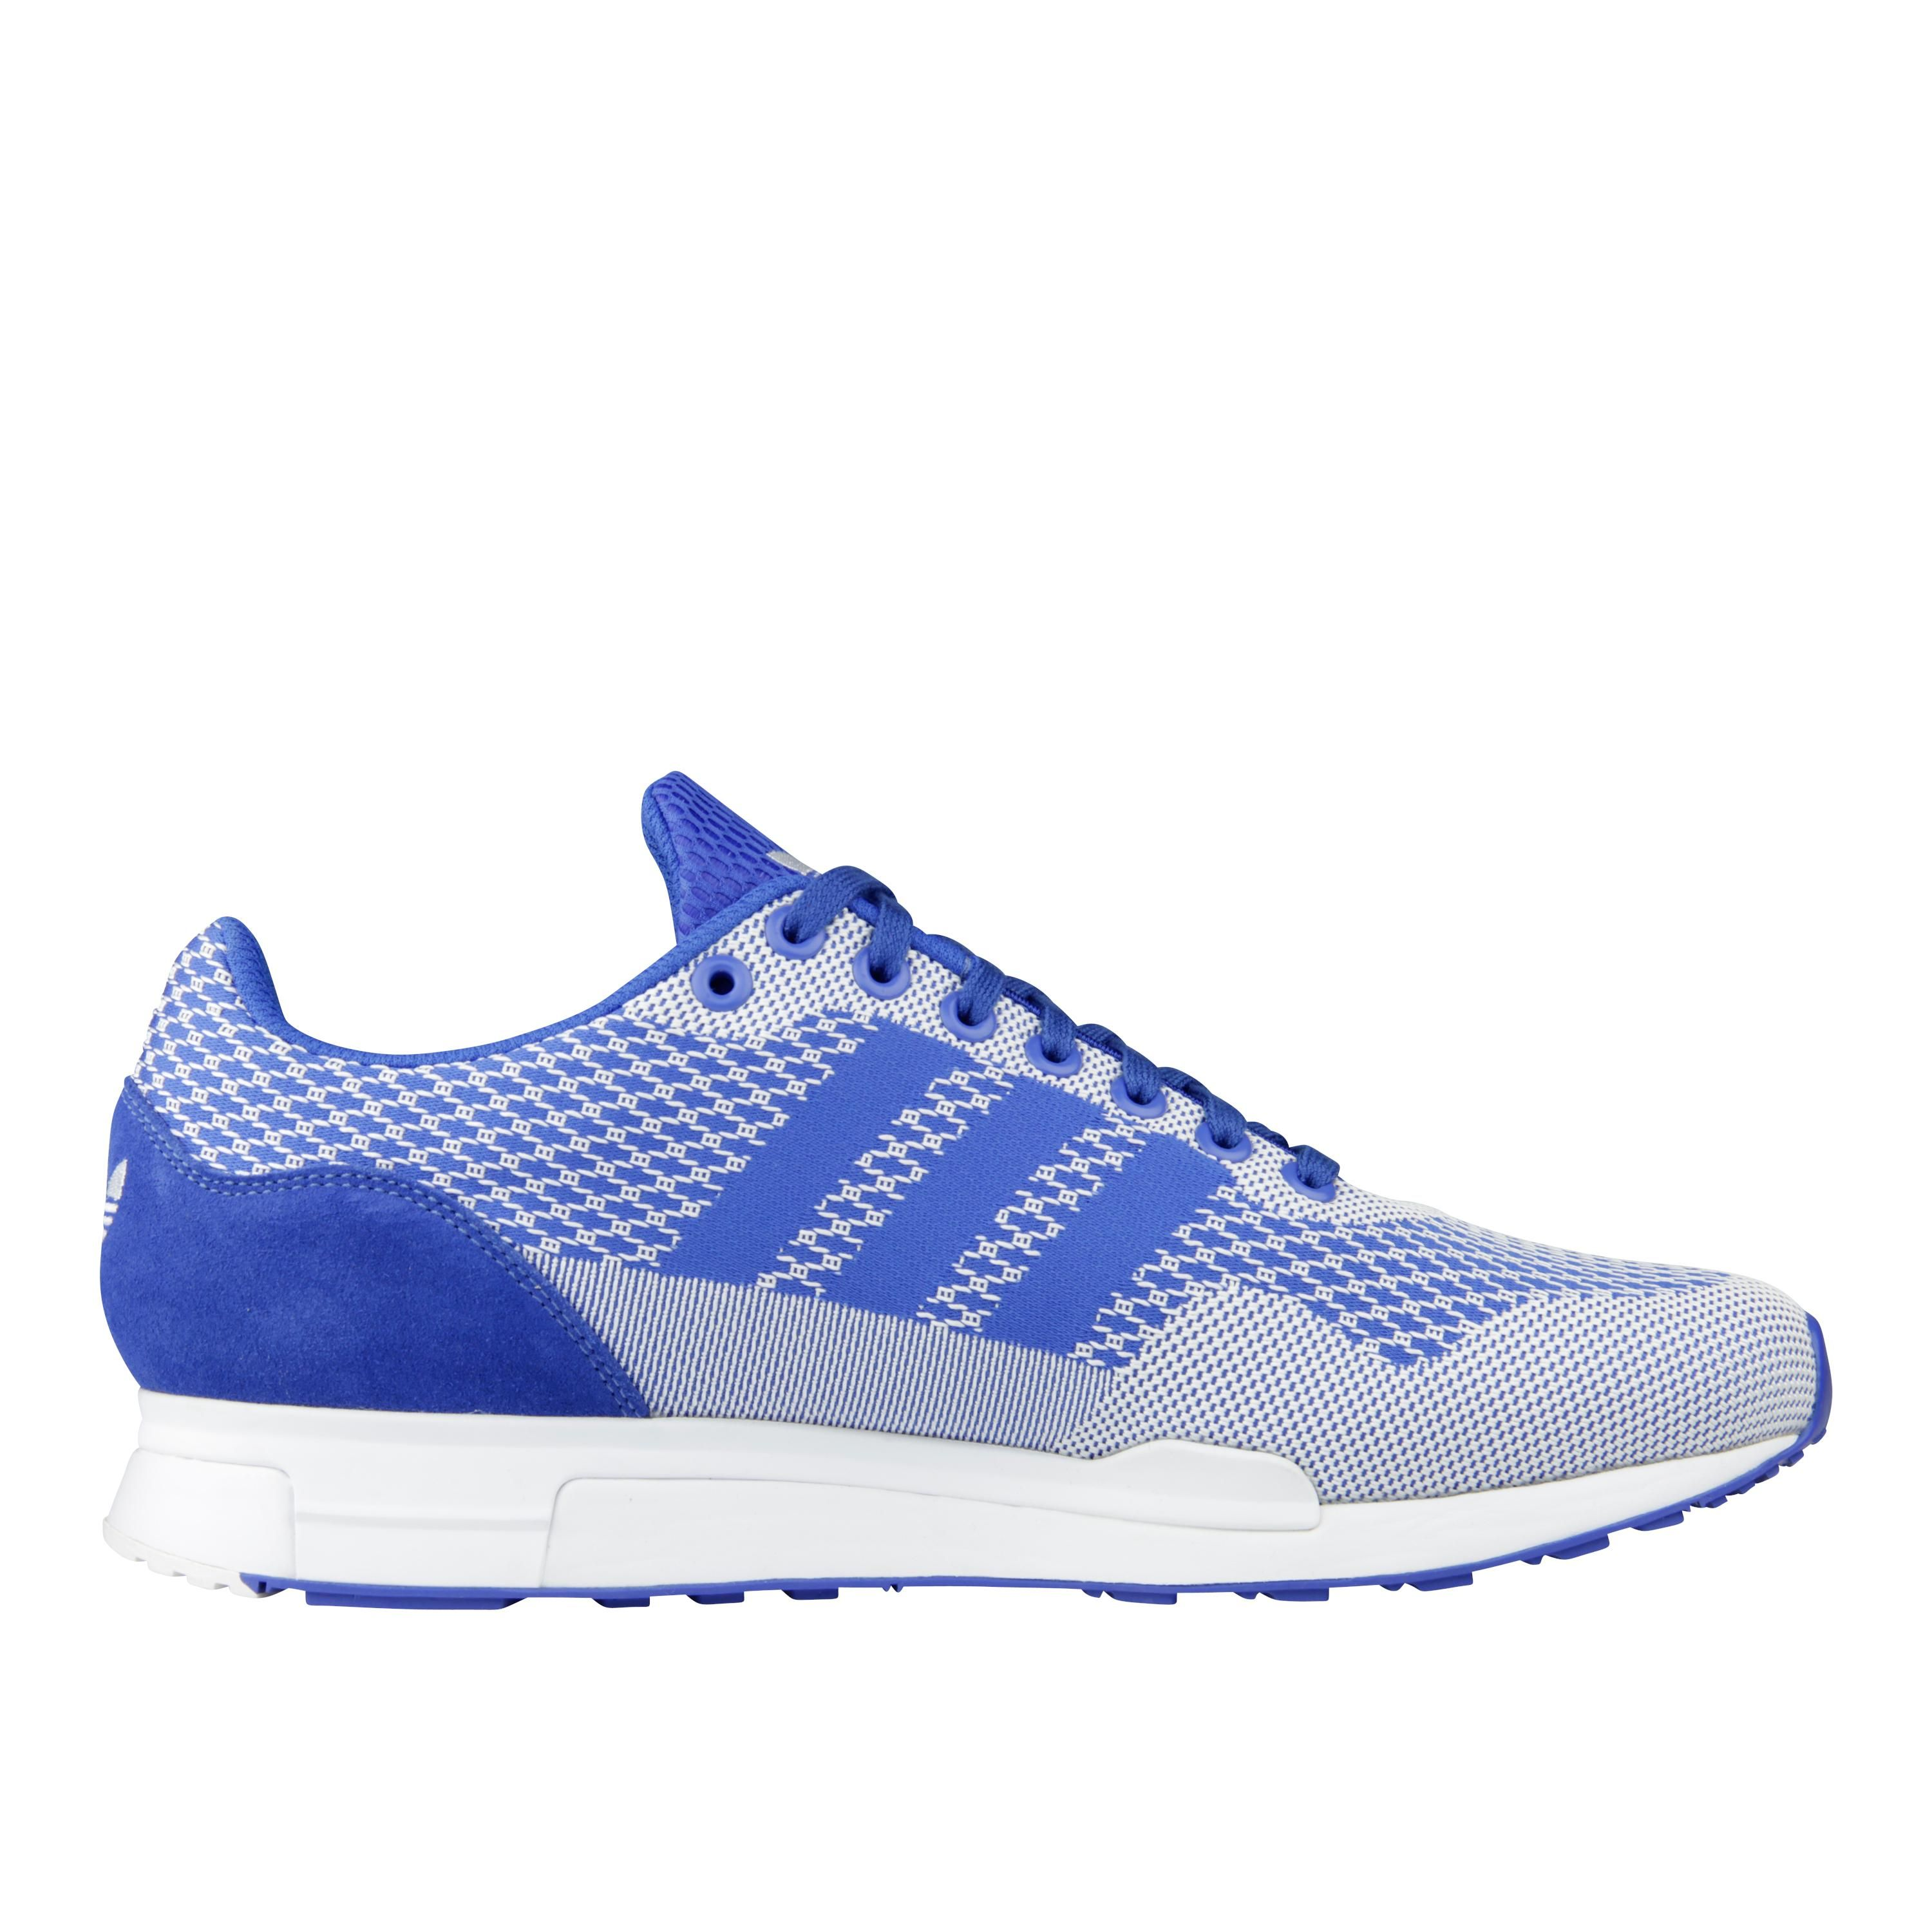 low priced 64eb9 d9f9a adidas zx 900 blue